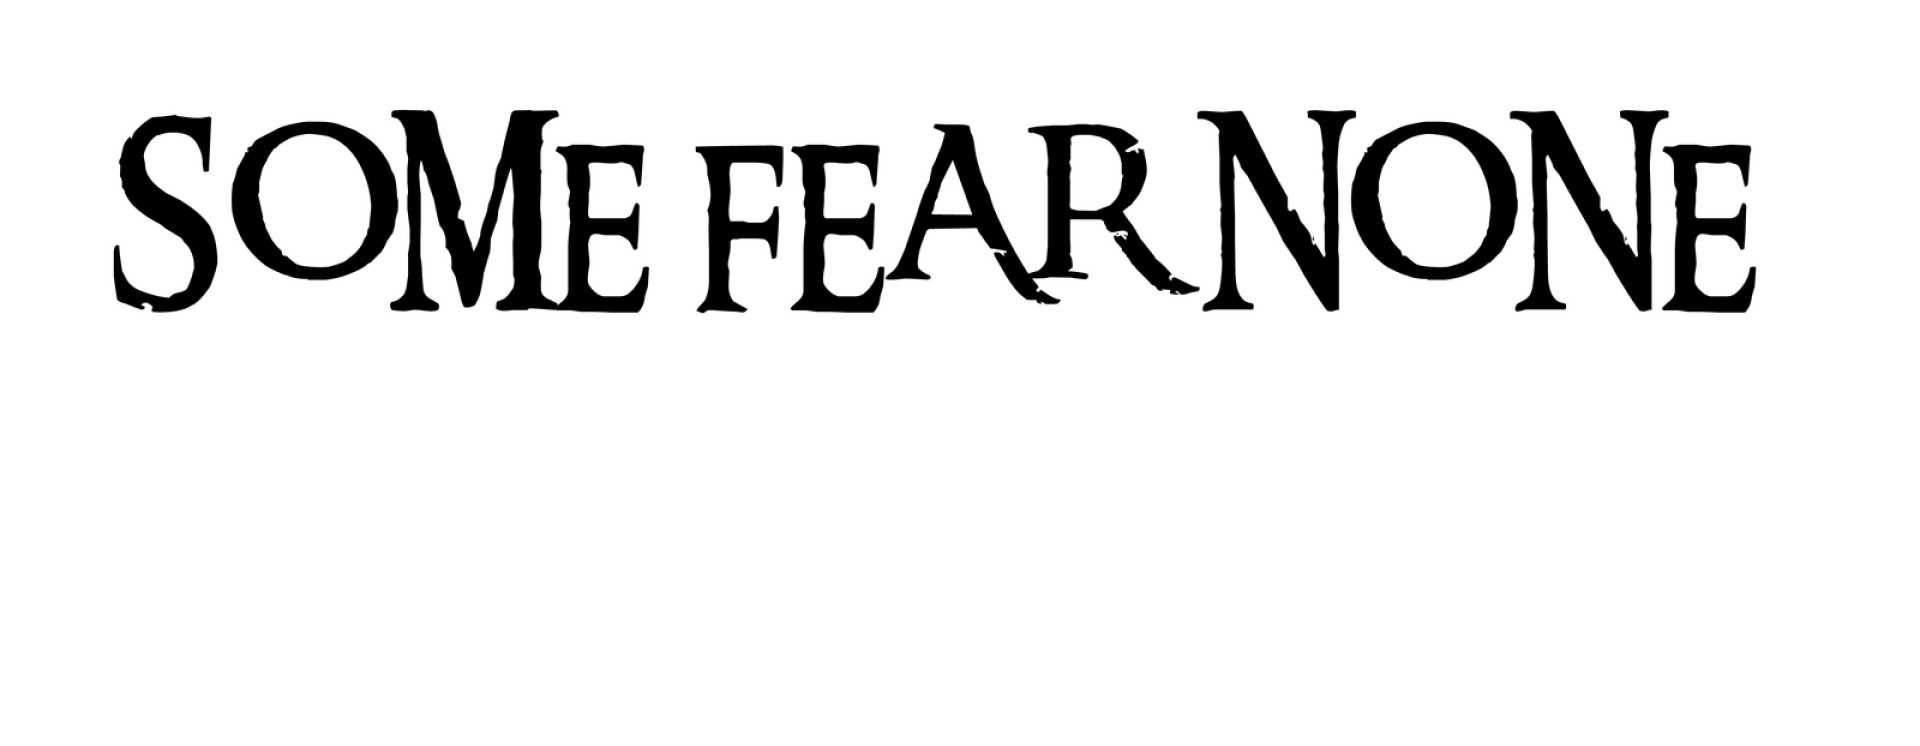 Some fear none name copy